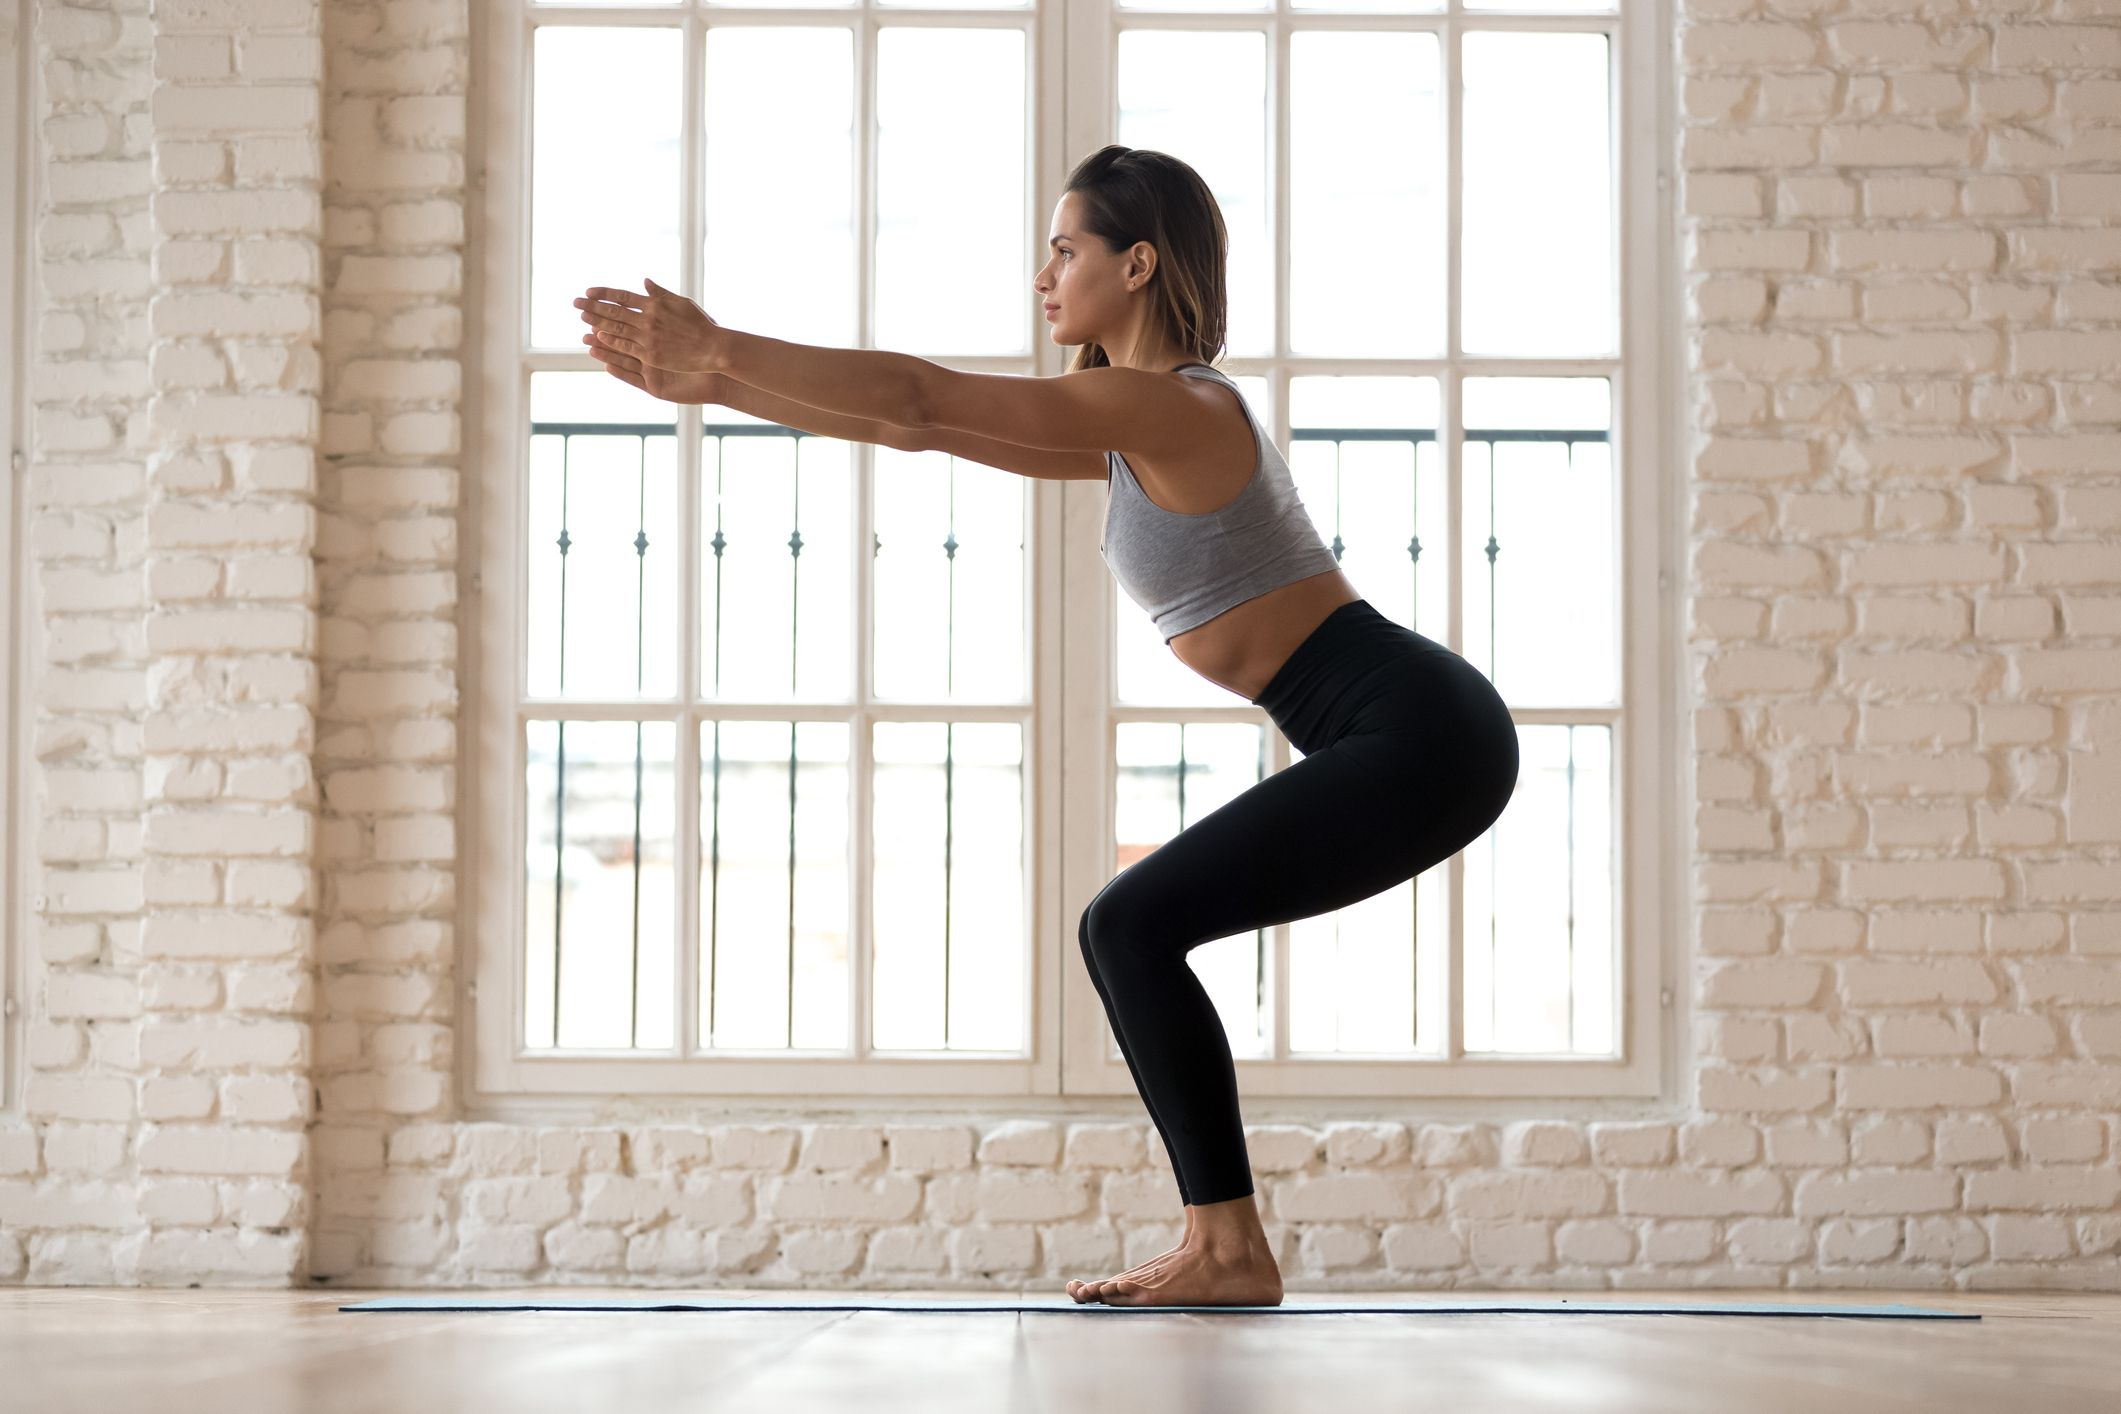 Try this no-equipment lower-body strength workout